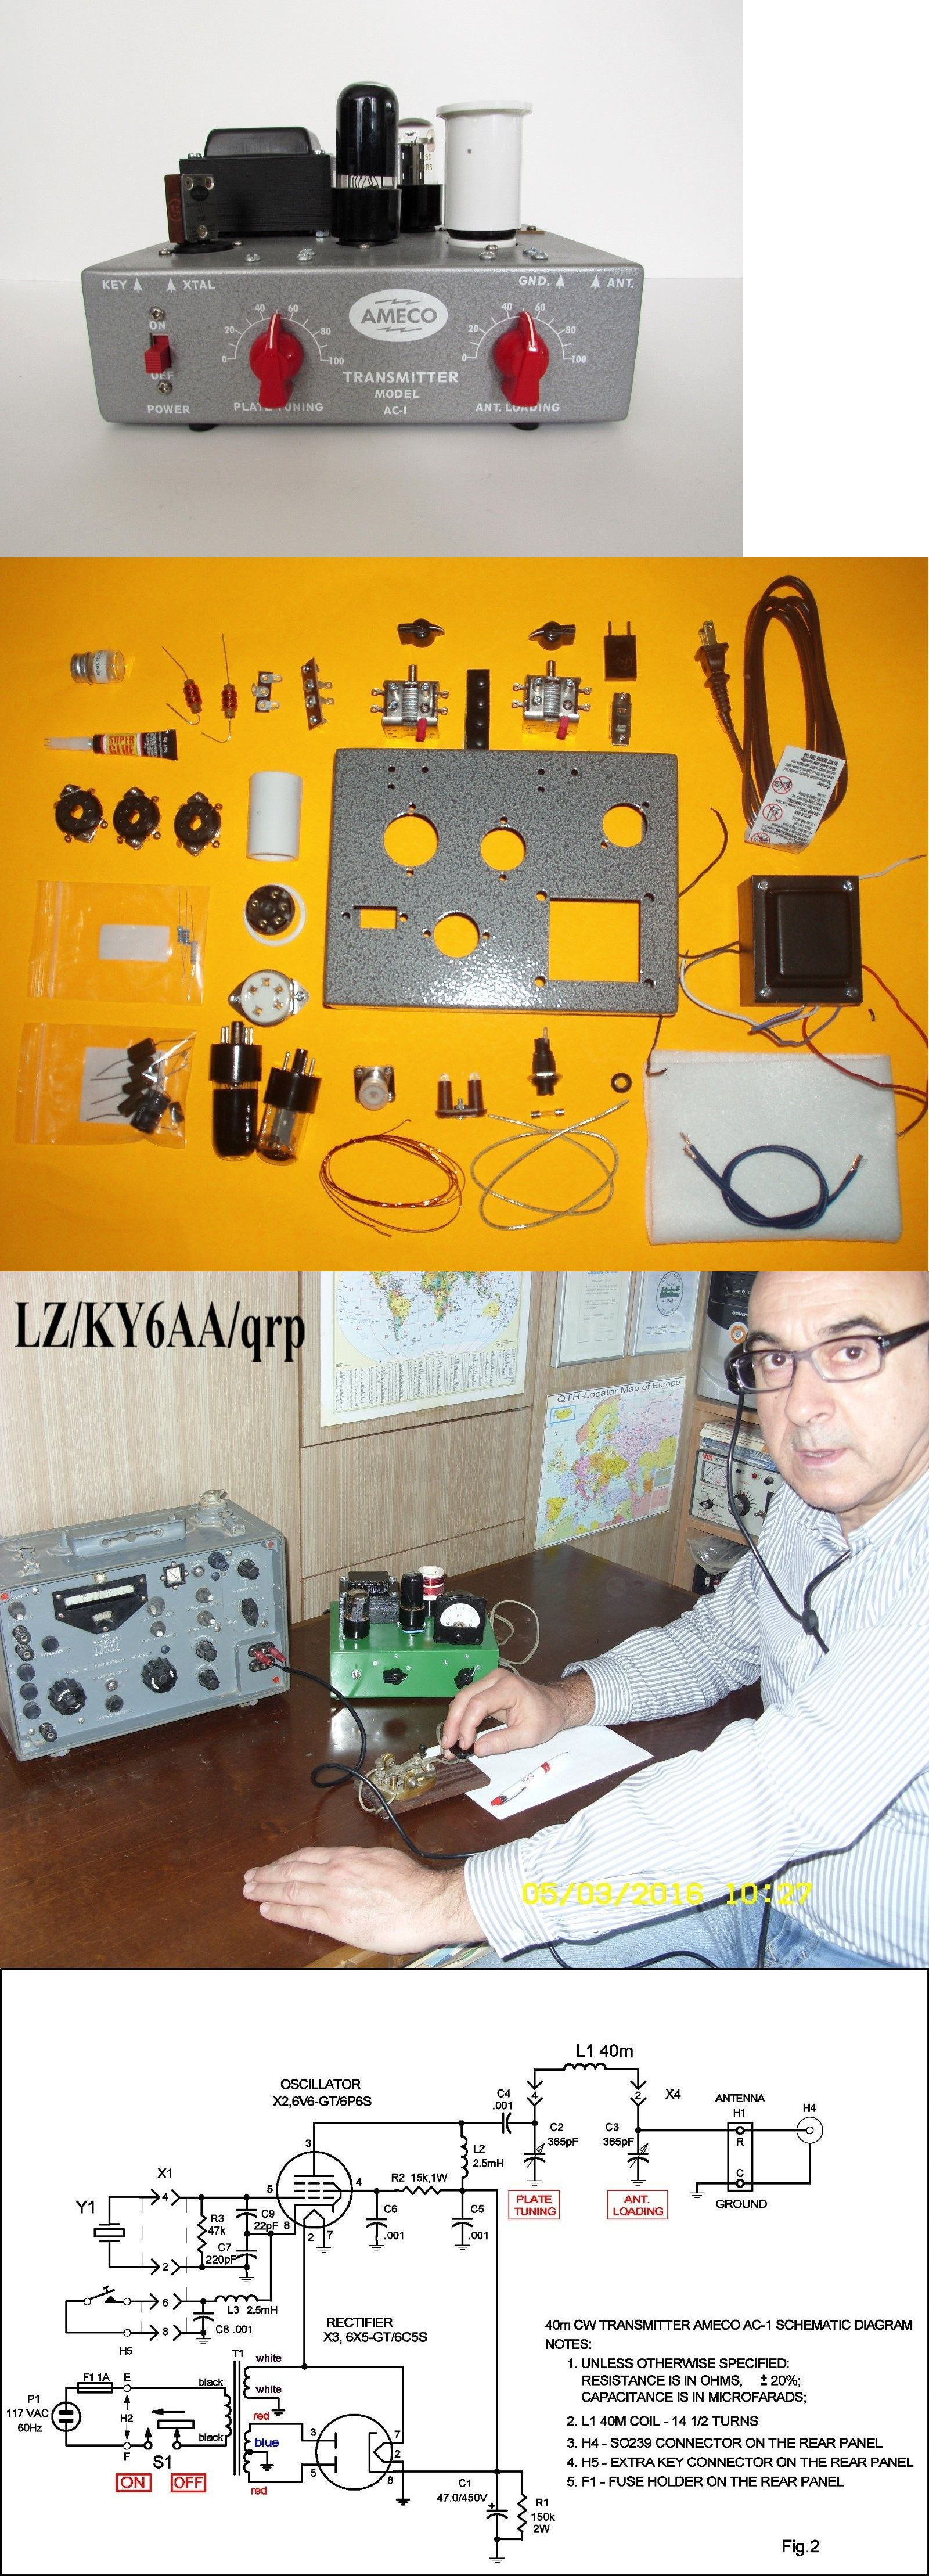 Ham radio transmitters ameco ac 1 transmitter diy do it yourself ham radio transmitters ameco ac 1 transmitter diy do it yourself replica solutioingenieria Image collections